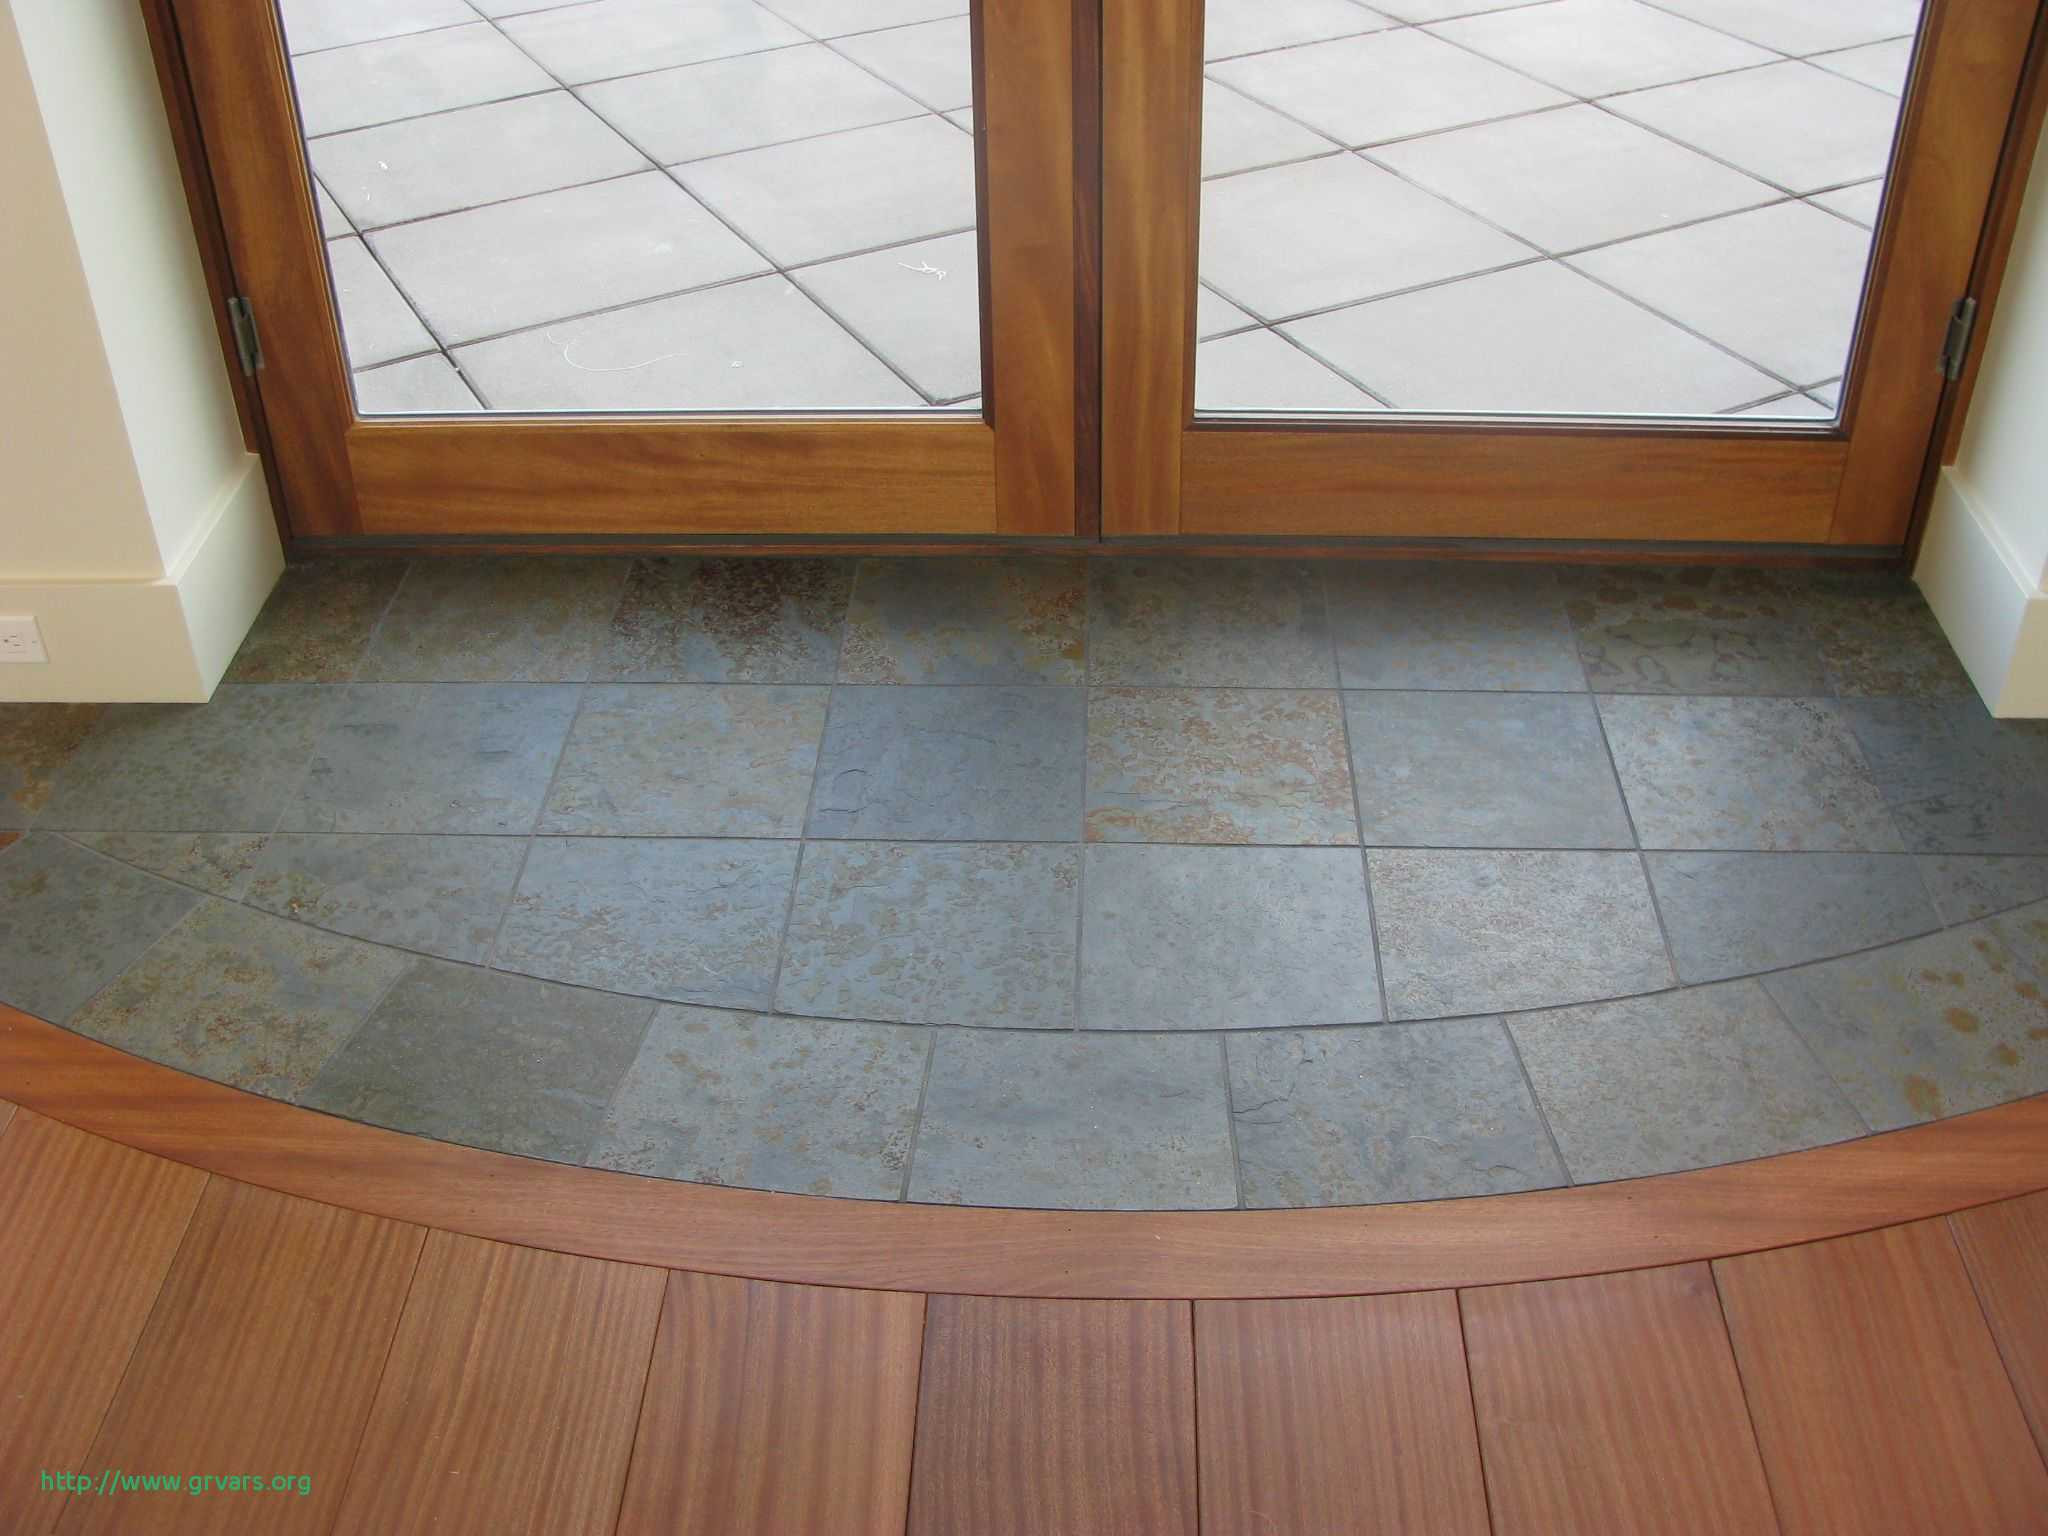 cv hardwood flooring of 21 charmant how to make ceramic tile floors shine ideas blog with how to make ceramic tile floors shine frais slate entryway to protect hardwood floors at french